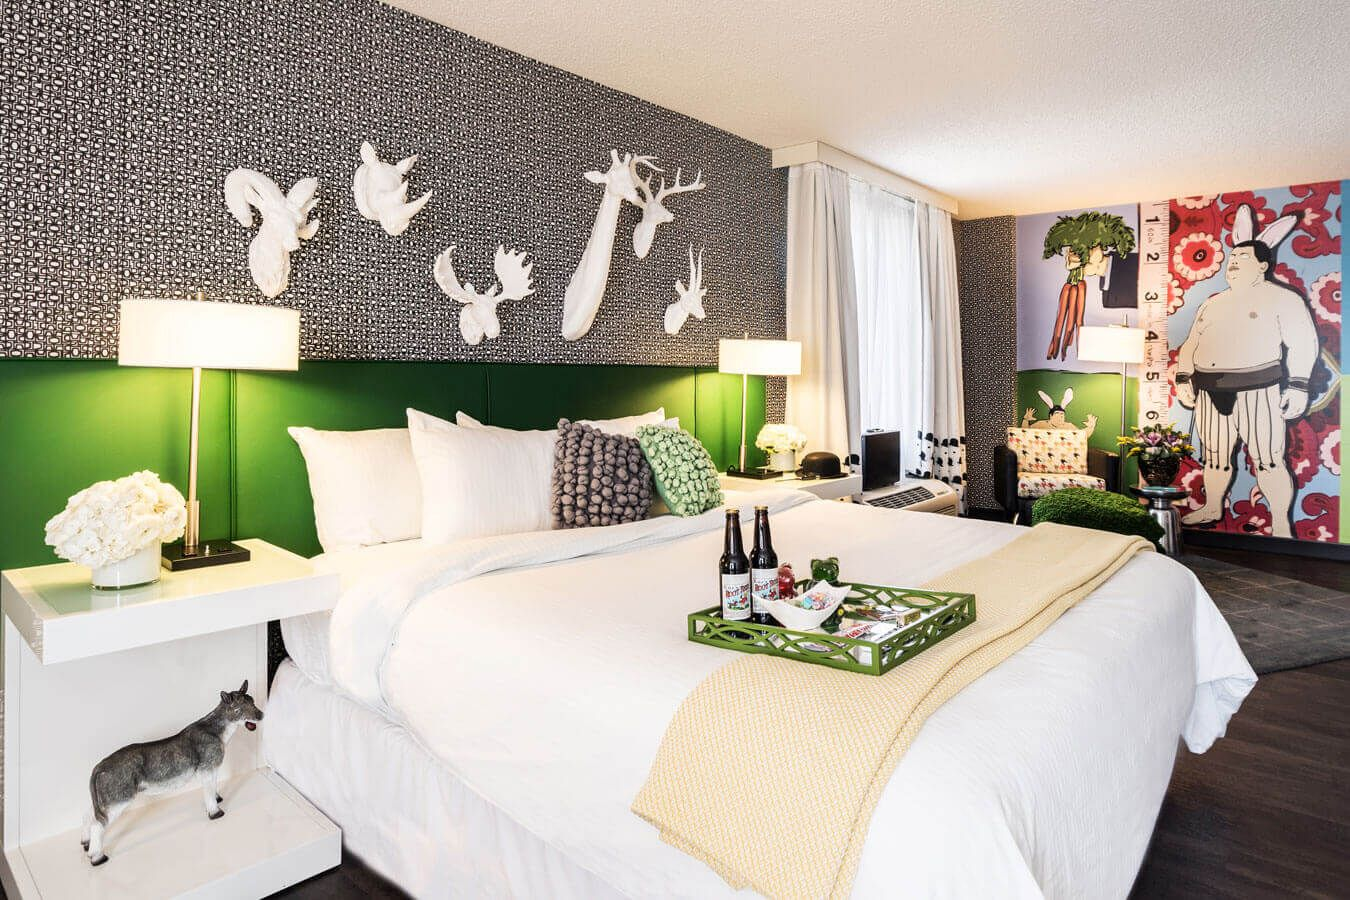 Located Smack Dab In The Center Of Downtown Just Two Blocks Off Street Mall Curtis Is A Uniquely Fun Denver Boutique Hotel